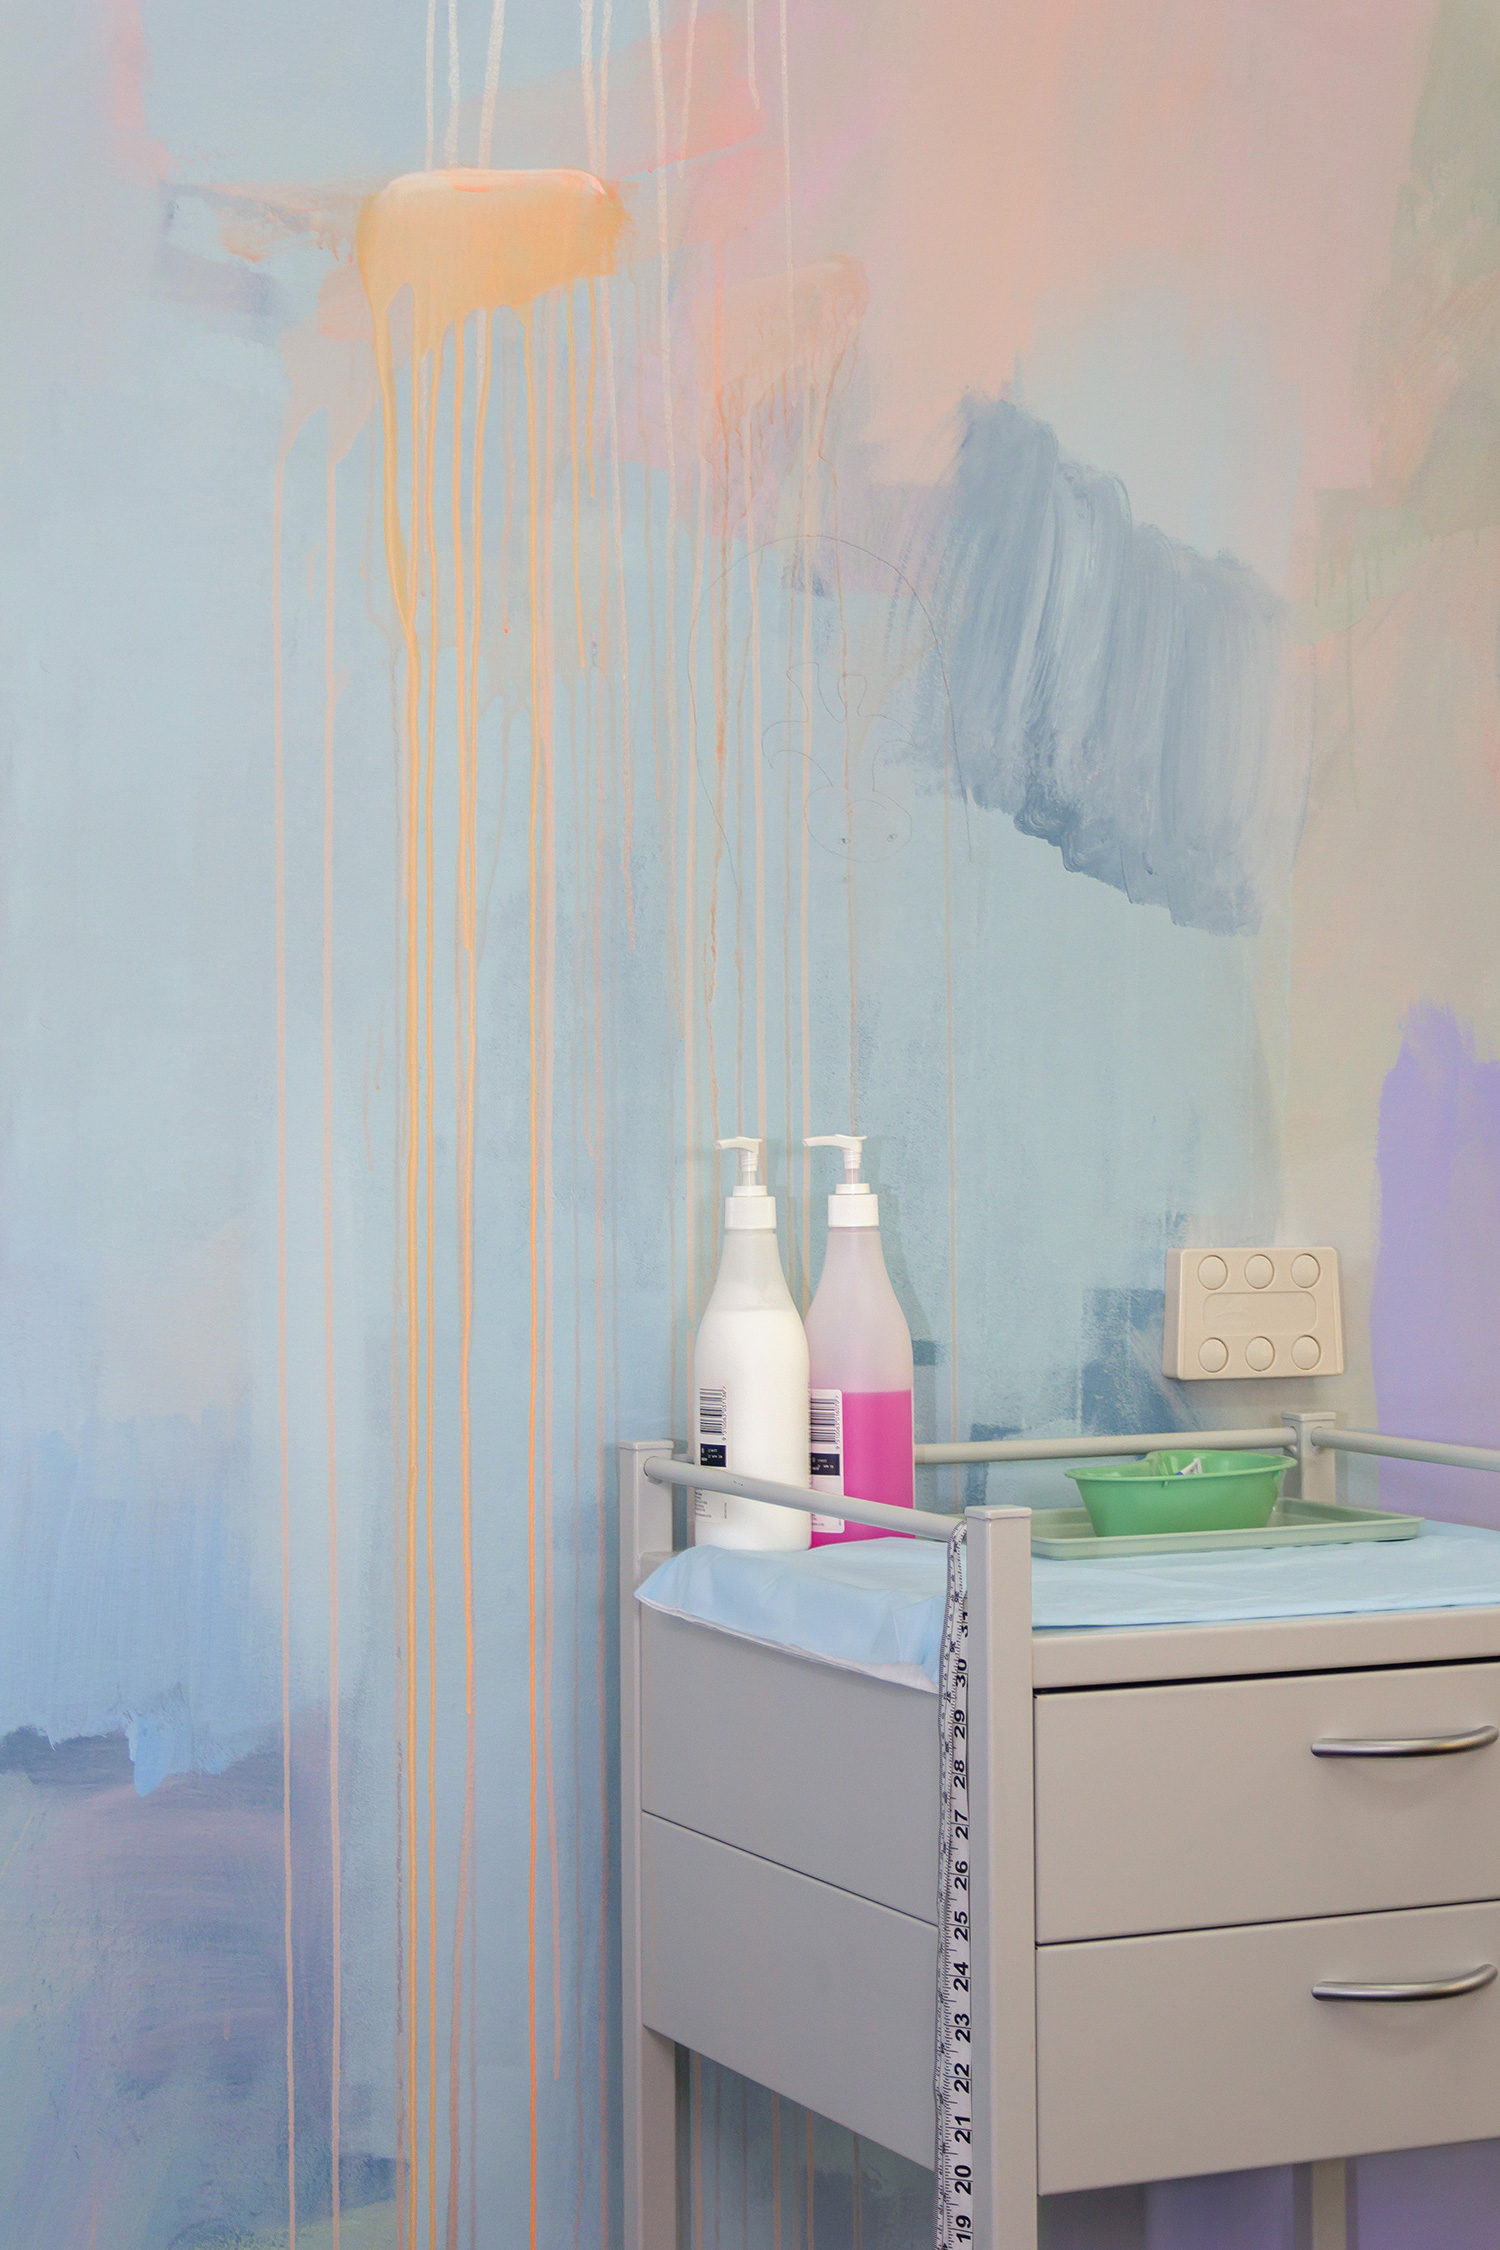 Close up detail of abstract pastel mural featuring dripping paint and medical equipment.